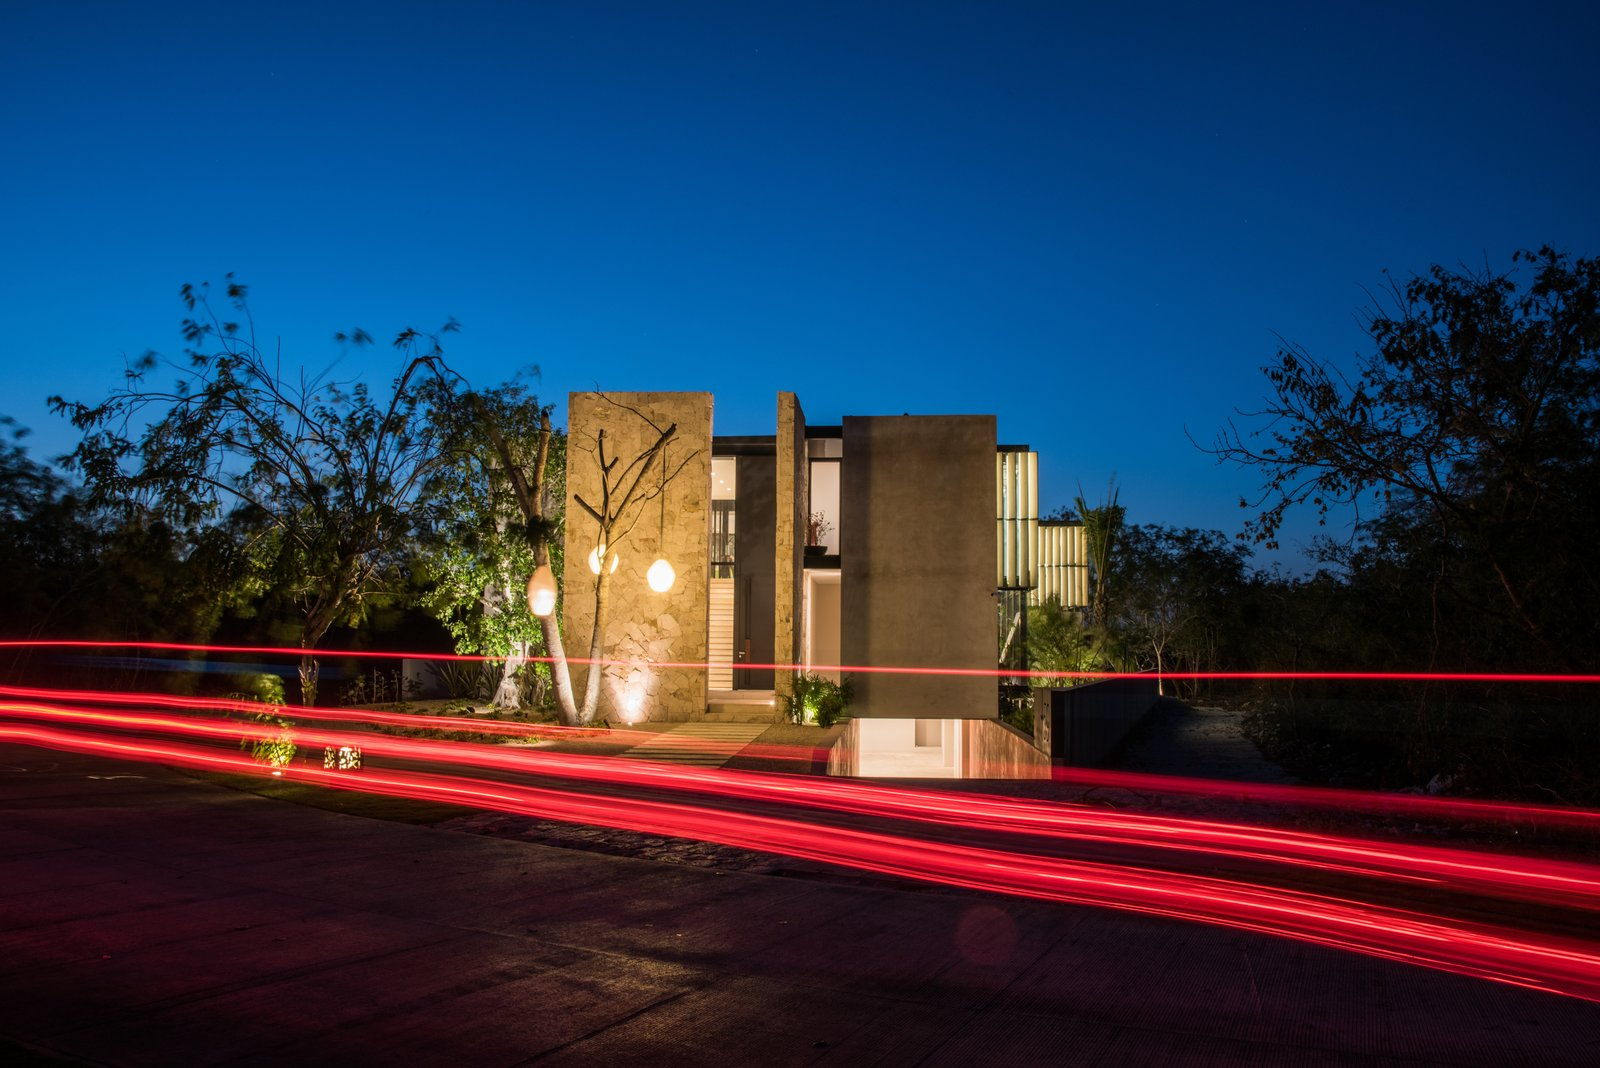 Outdoor, Landscape Lighting, Trees, Hanging Lighting, and Front Yard Facade  Casa Chaaltun by tescala